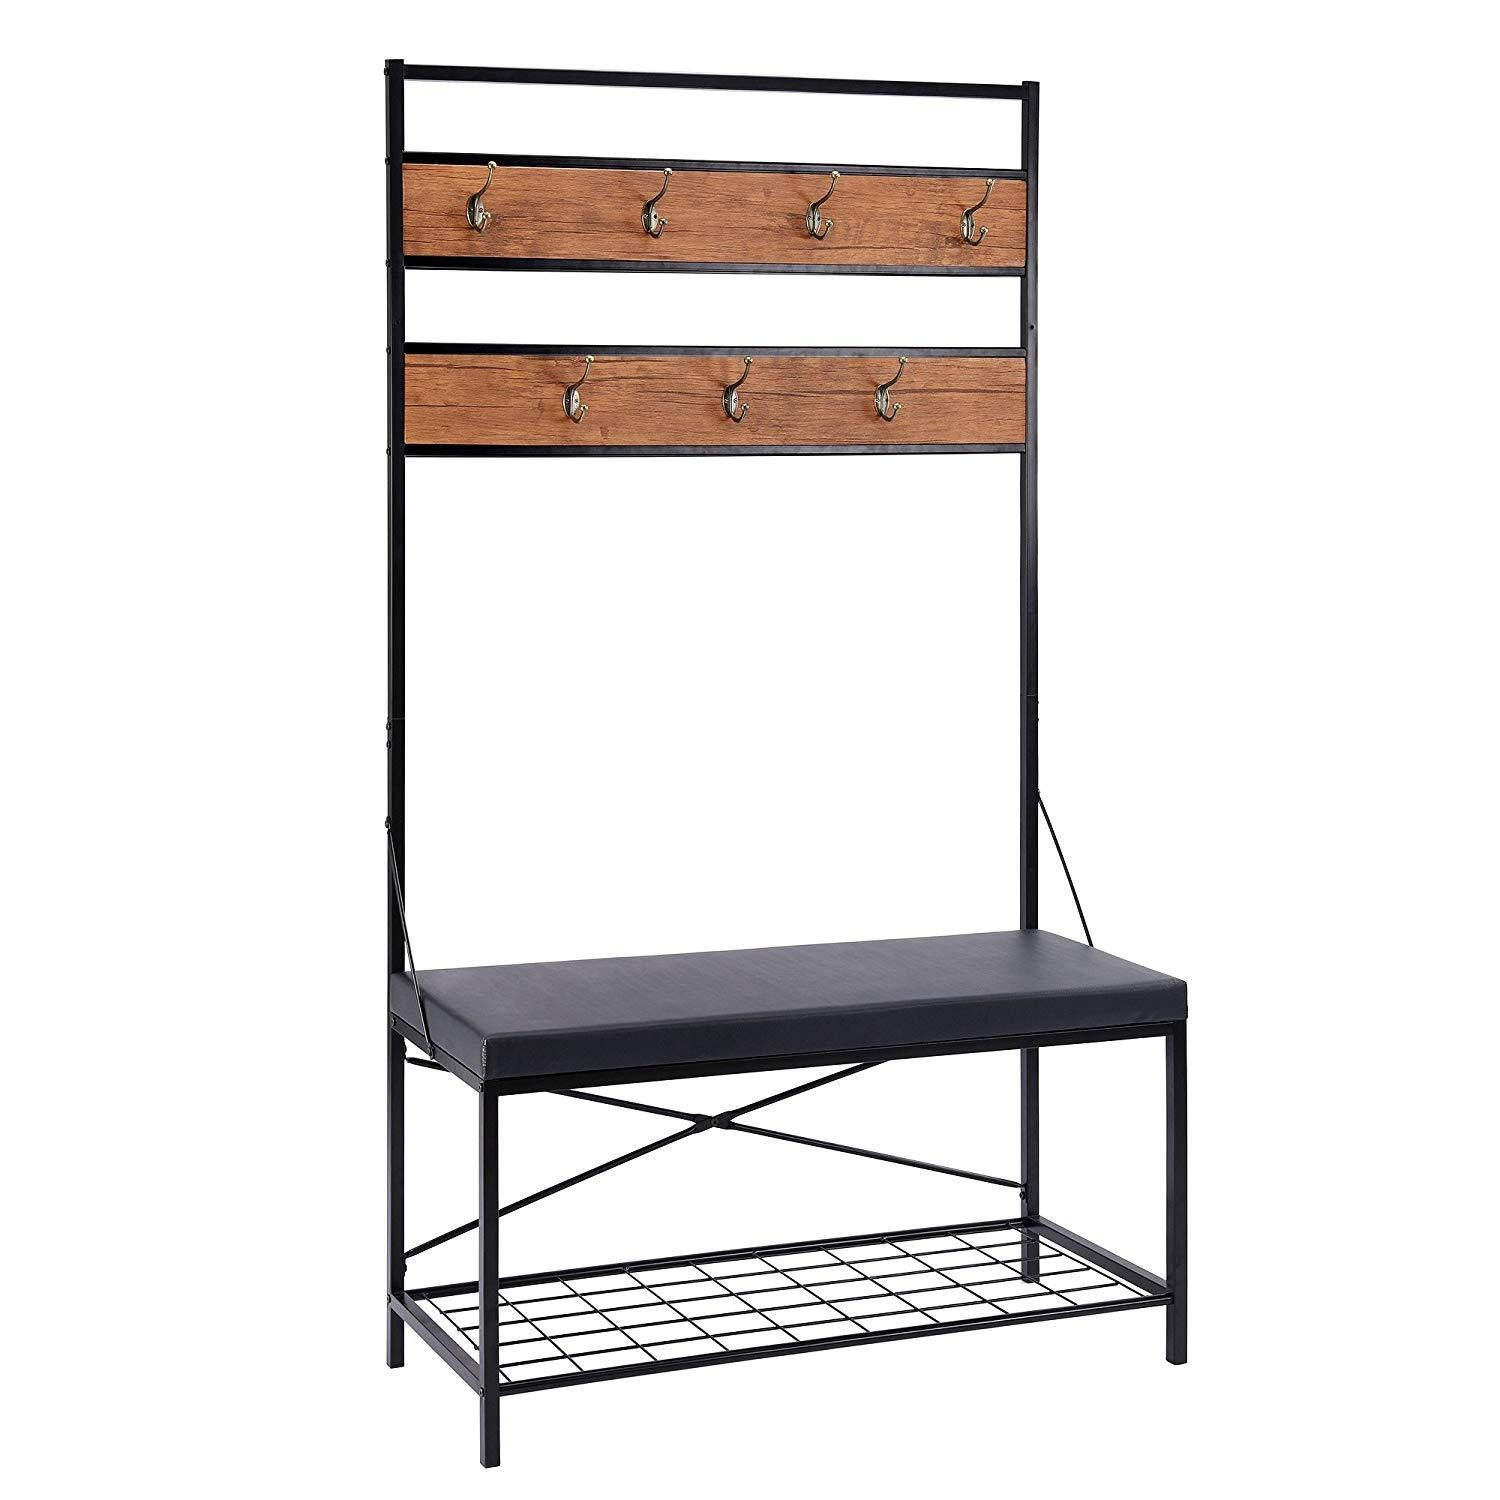 FIVEGIVEN Hall Tree Coat Rack Bench for Entryway Rustic in Black/Brown with 5 Hooks and Top Storage/Display Shelf